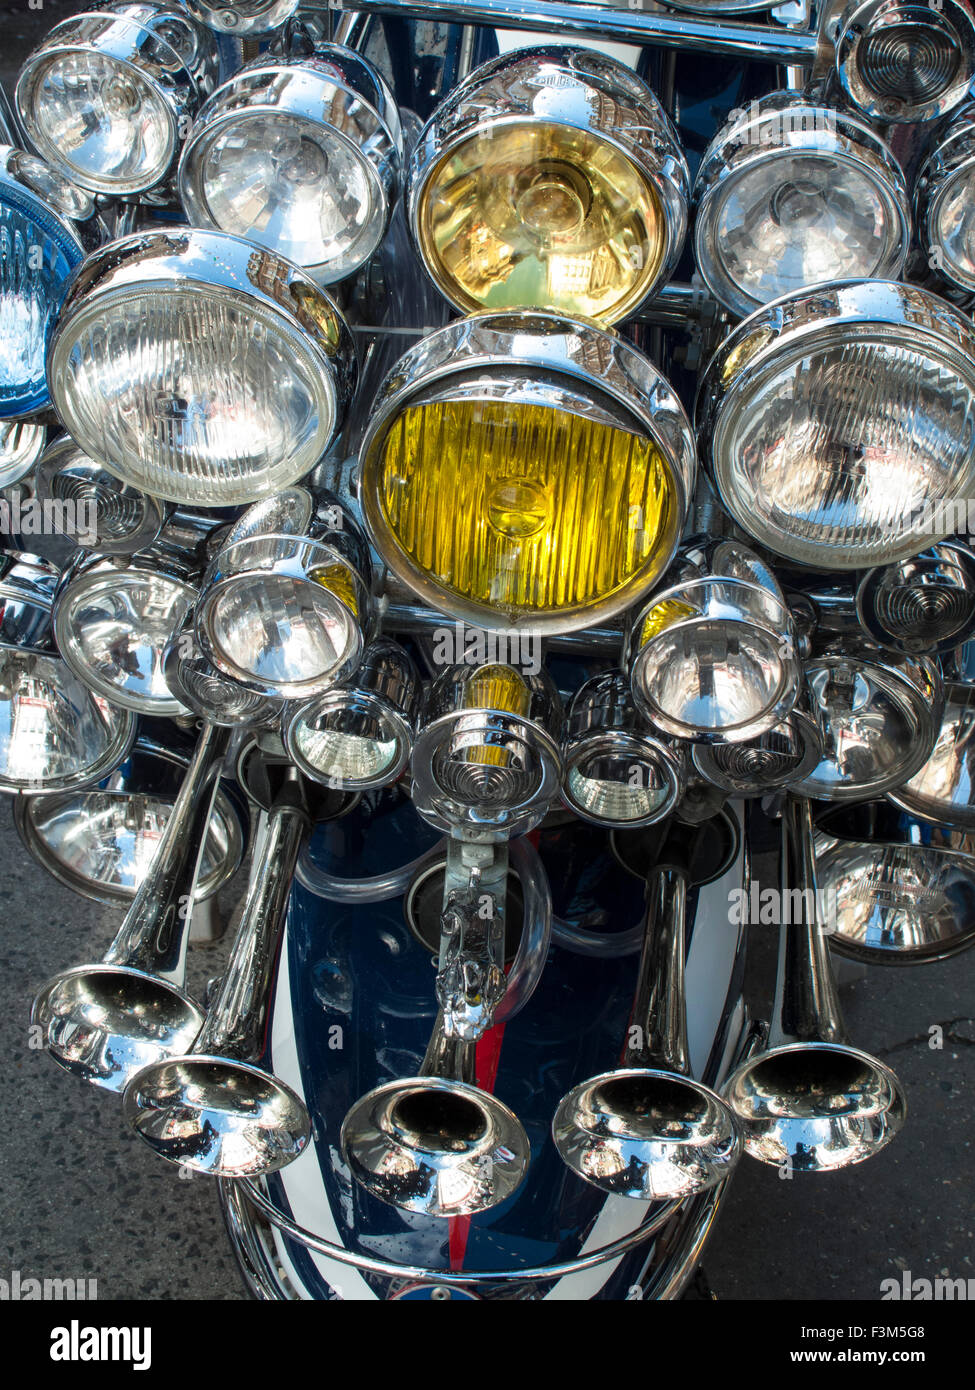 Customised scooter from the 1960's, Mod's Lambretta with lamps, mirrors and badges - Stock Image